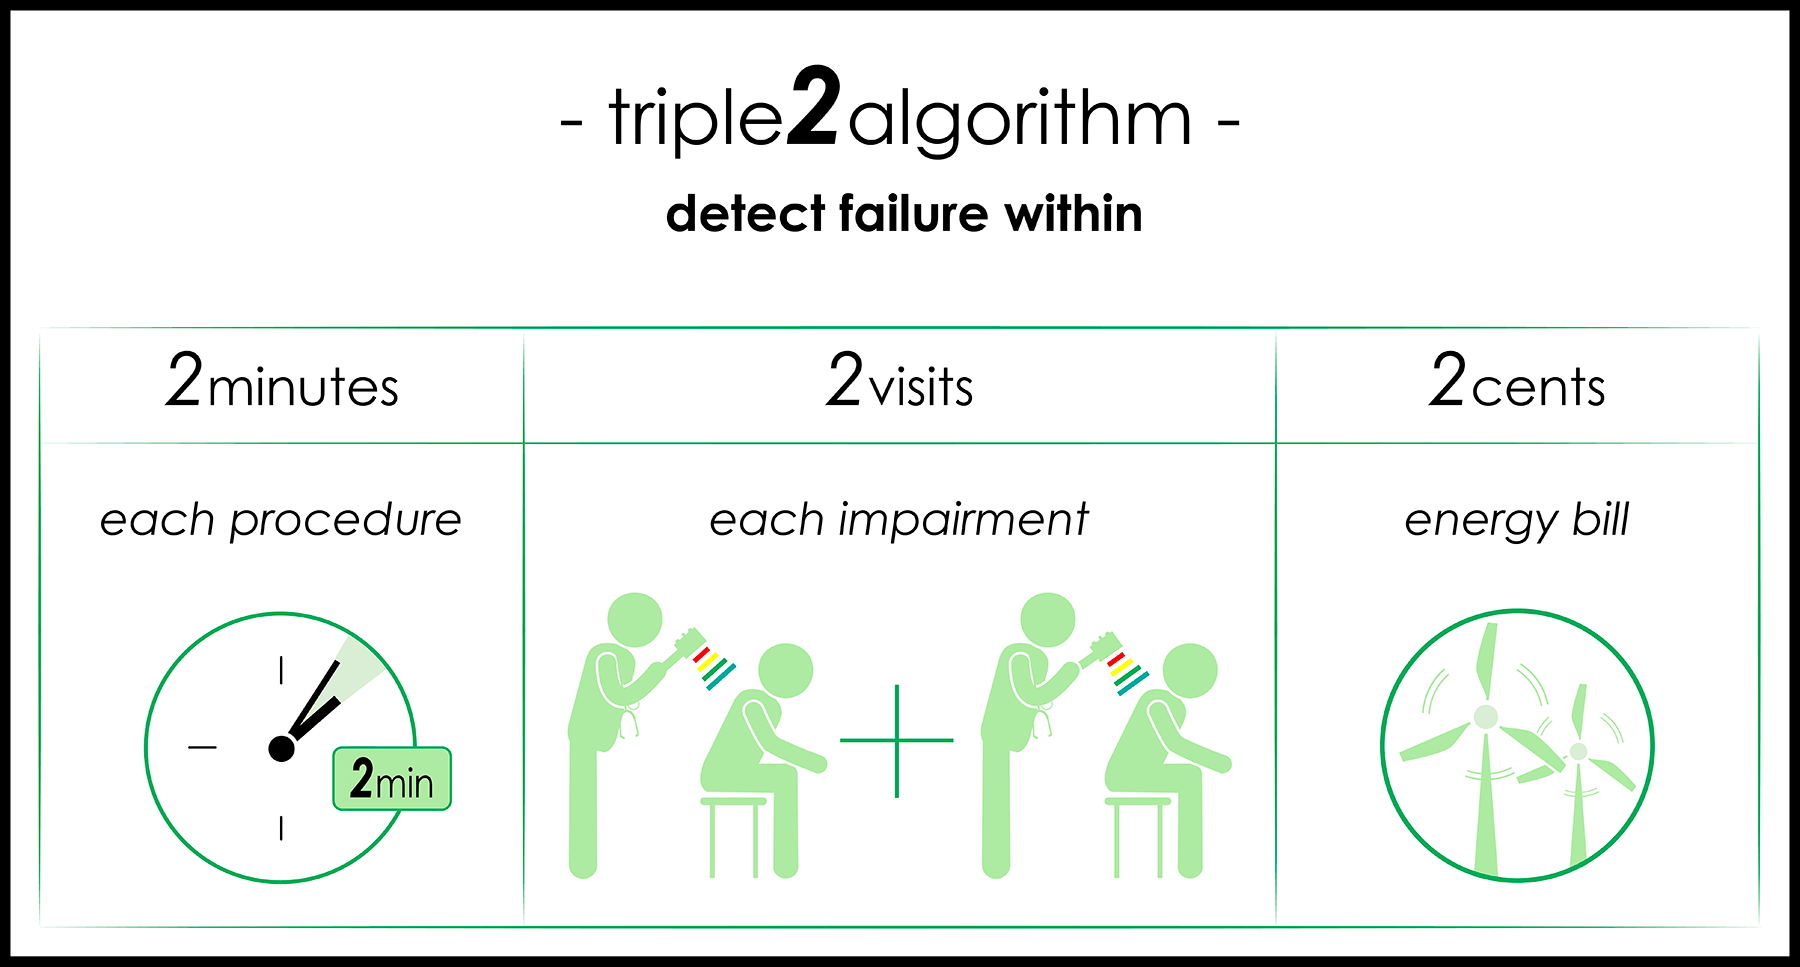 PhotoMed's Triple 2 Algorithm improves the efficiency of therapy using the   Vari-Chrome® Pro   alone or with the   Instant Verification System  ™. It's easier to detect a failure to respond than to measure success for treatment-resistant pain or functional impairments.